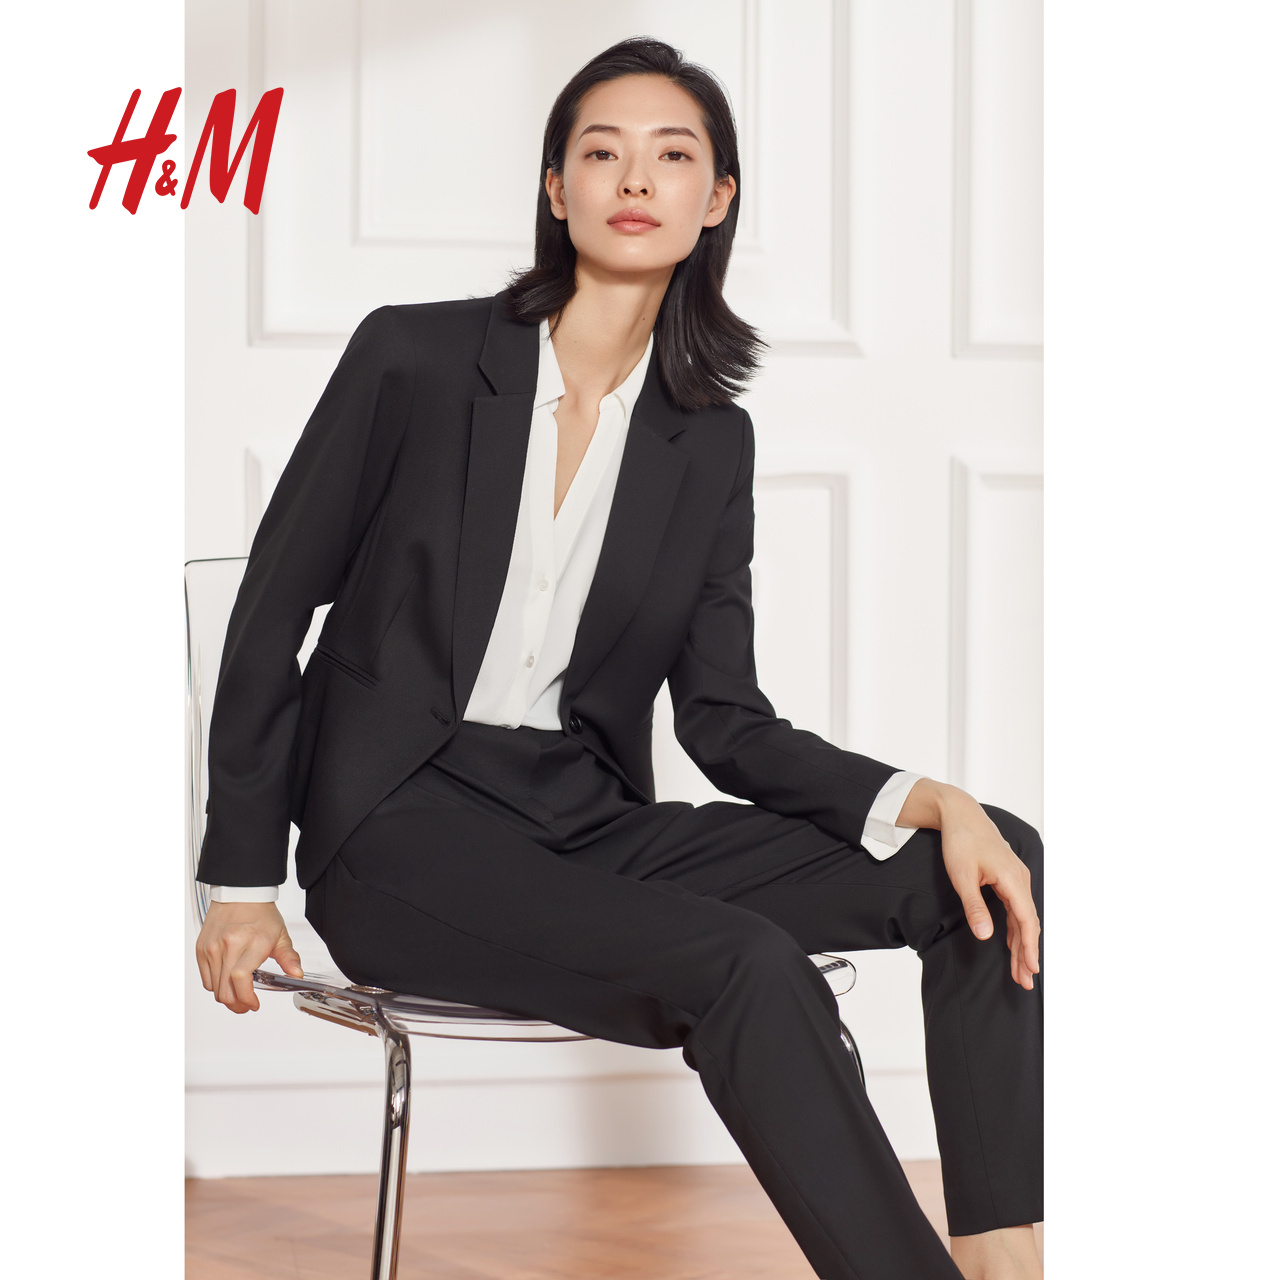 HM women's casual suit women's top suit 2020 spring new air slim suit coat women's 0568601